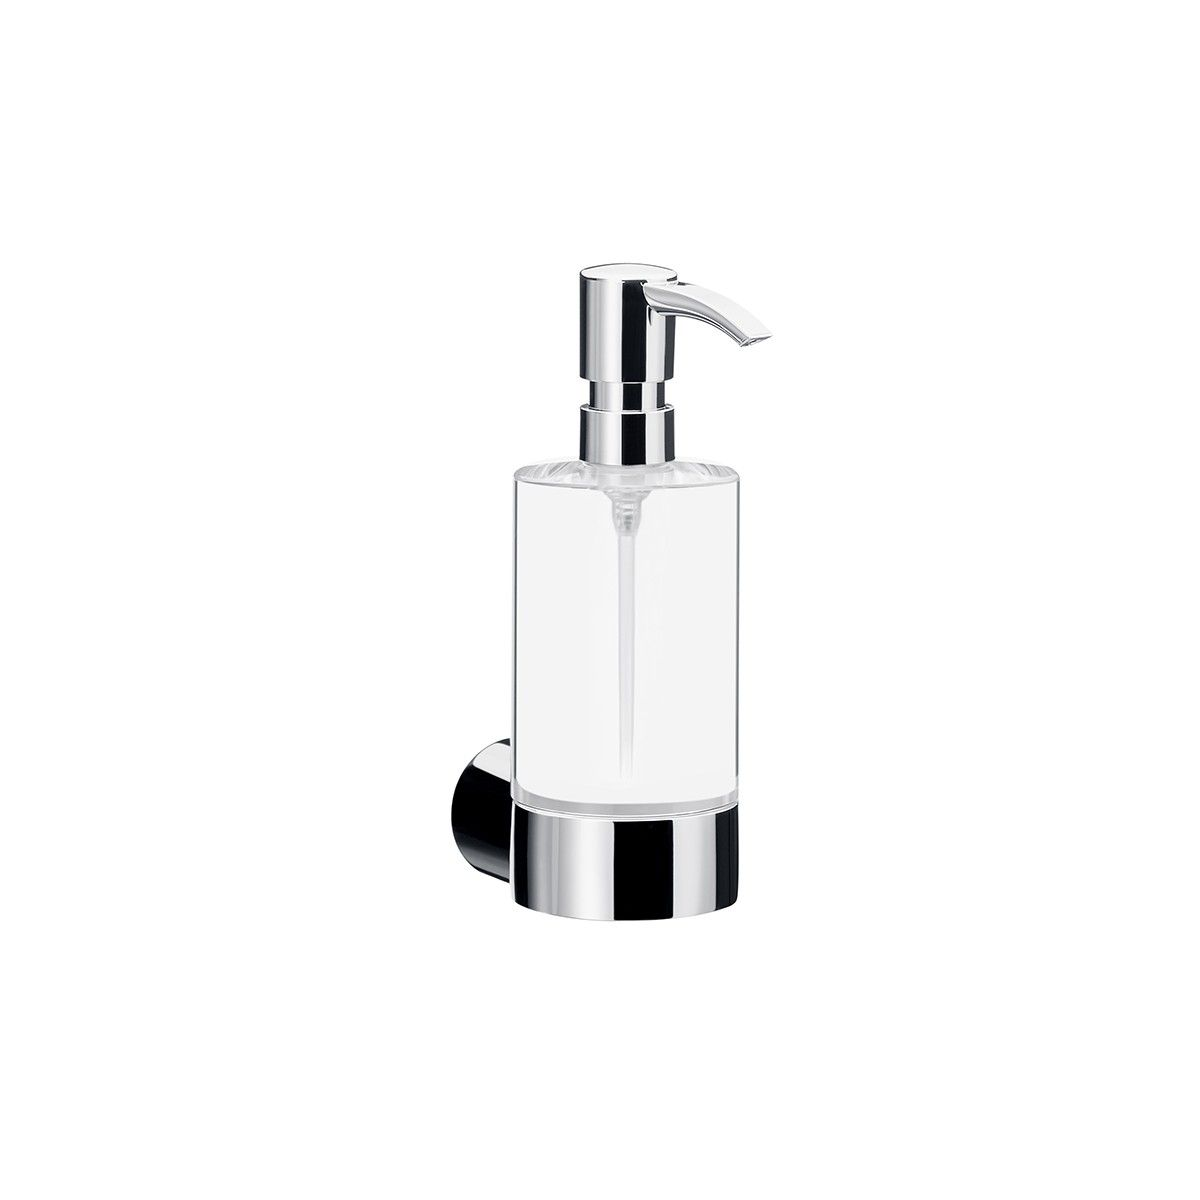 Fino 8421.001.01 Wall Mount Soap Dispenser From the Fino Collection ...